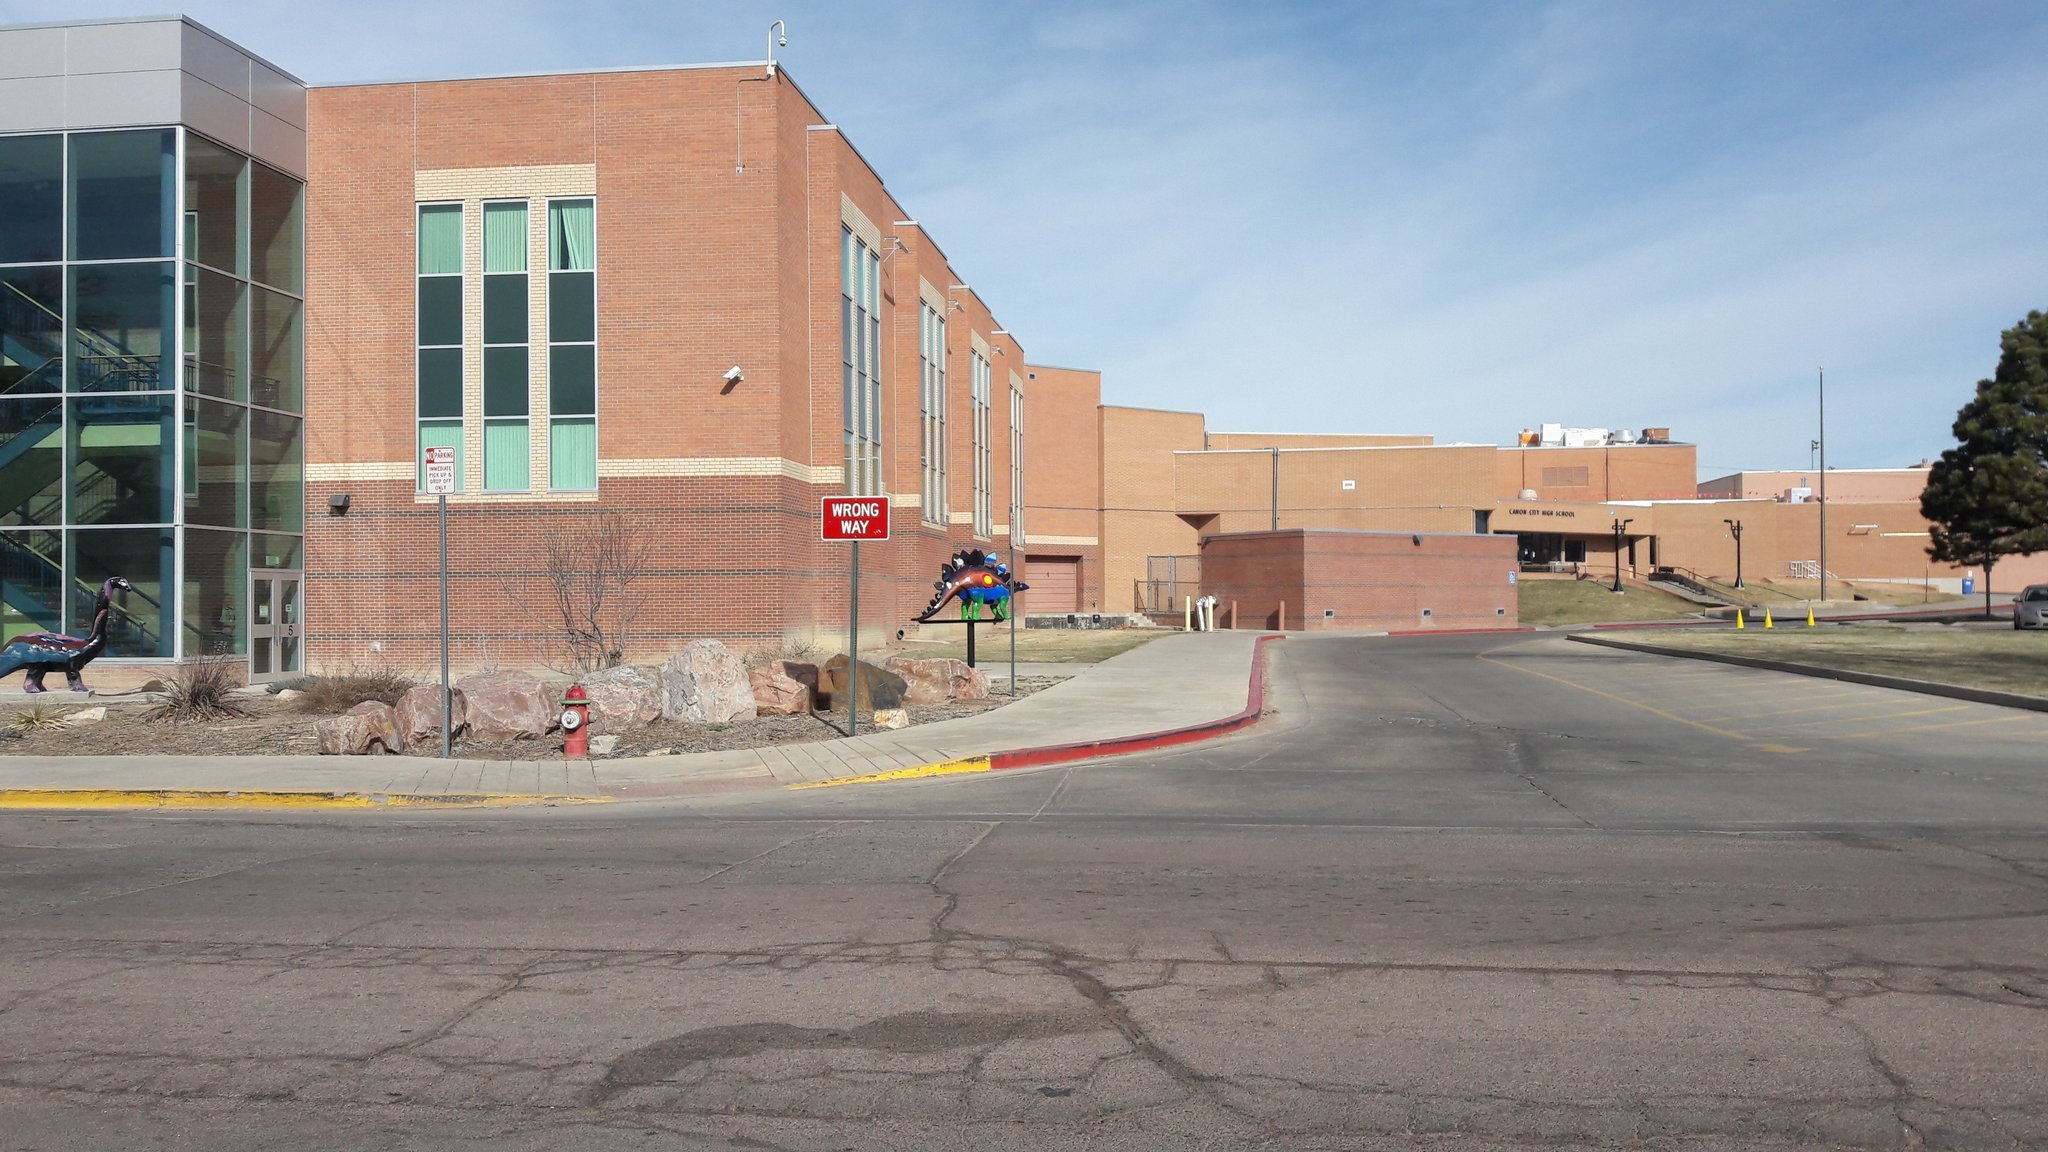 Alleged threat leads to arrest of Fremont student